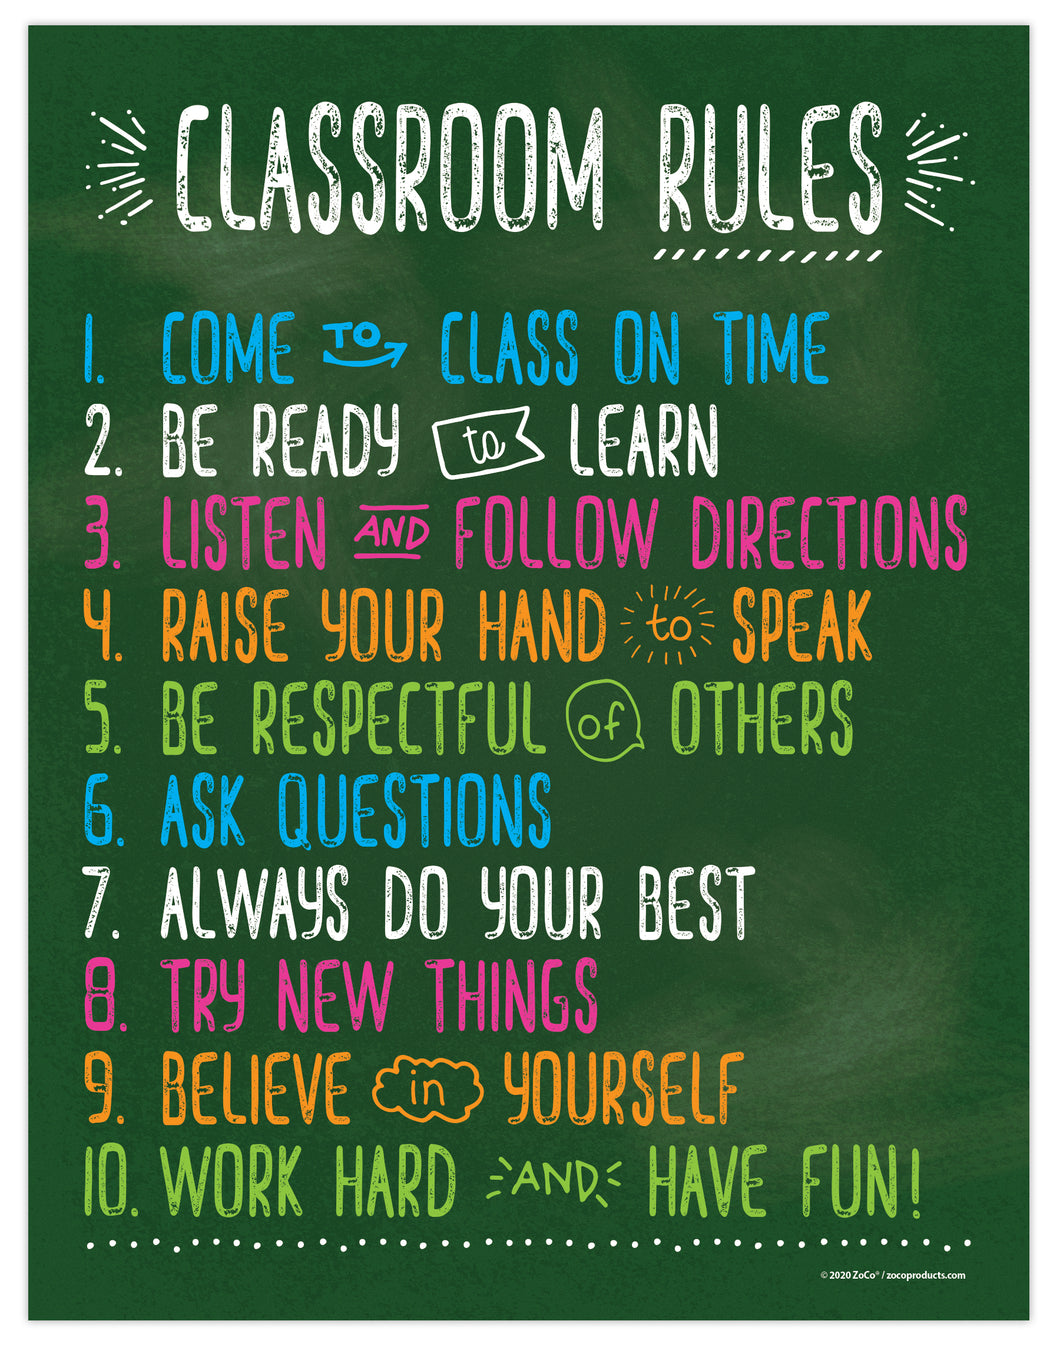 Classroom Rules Poster - 17